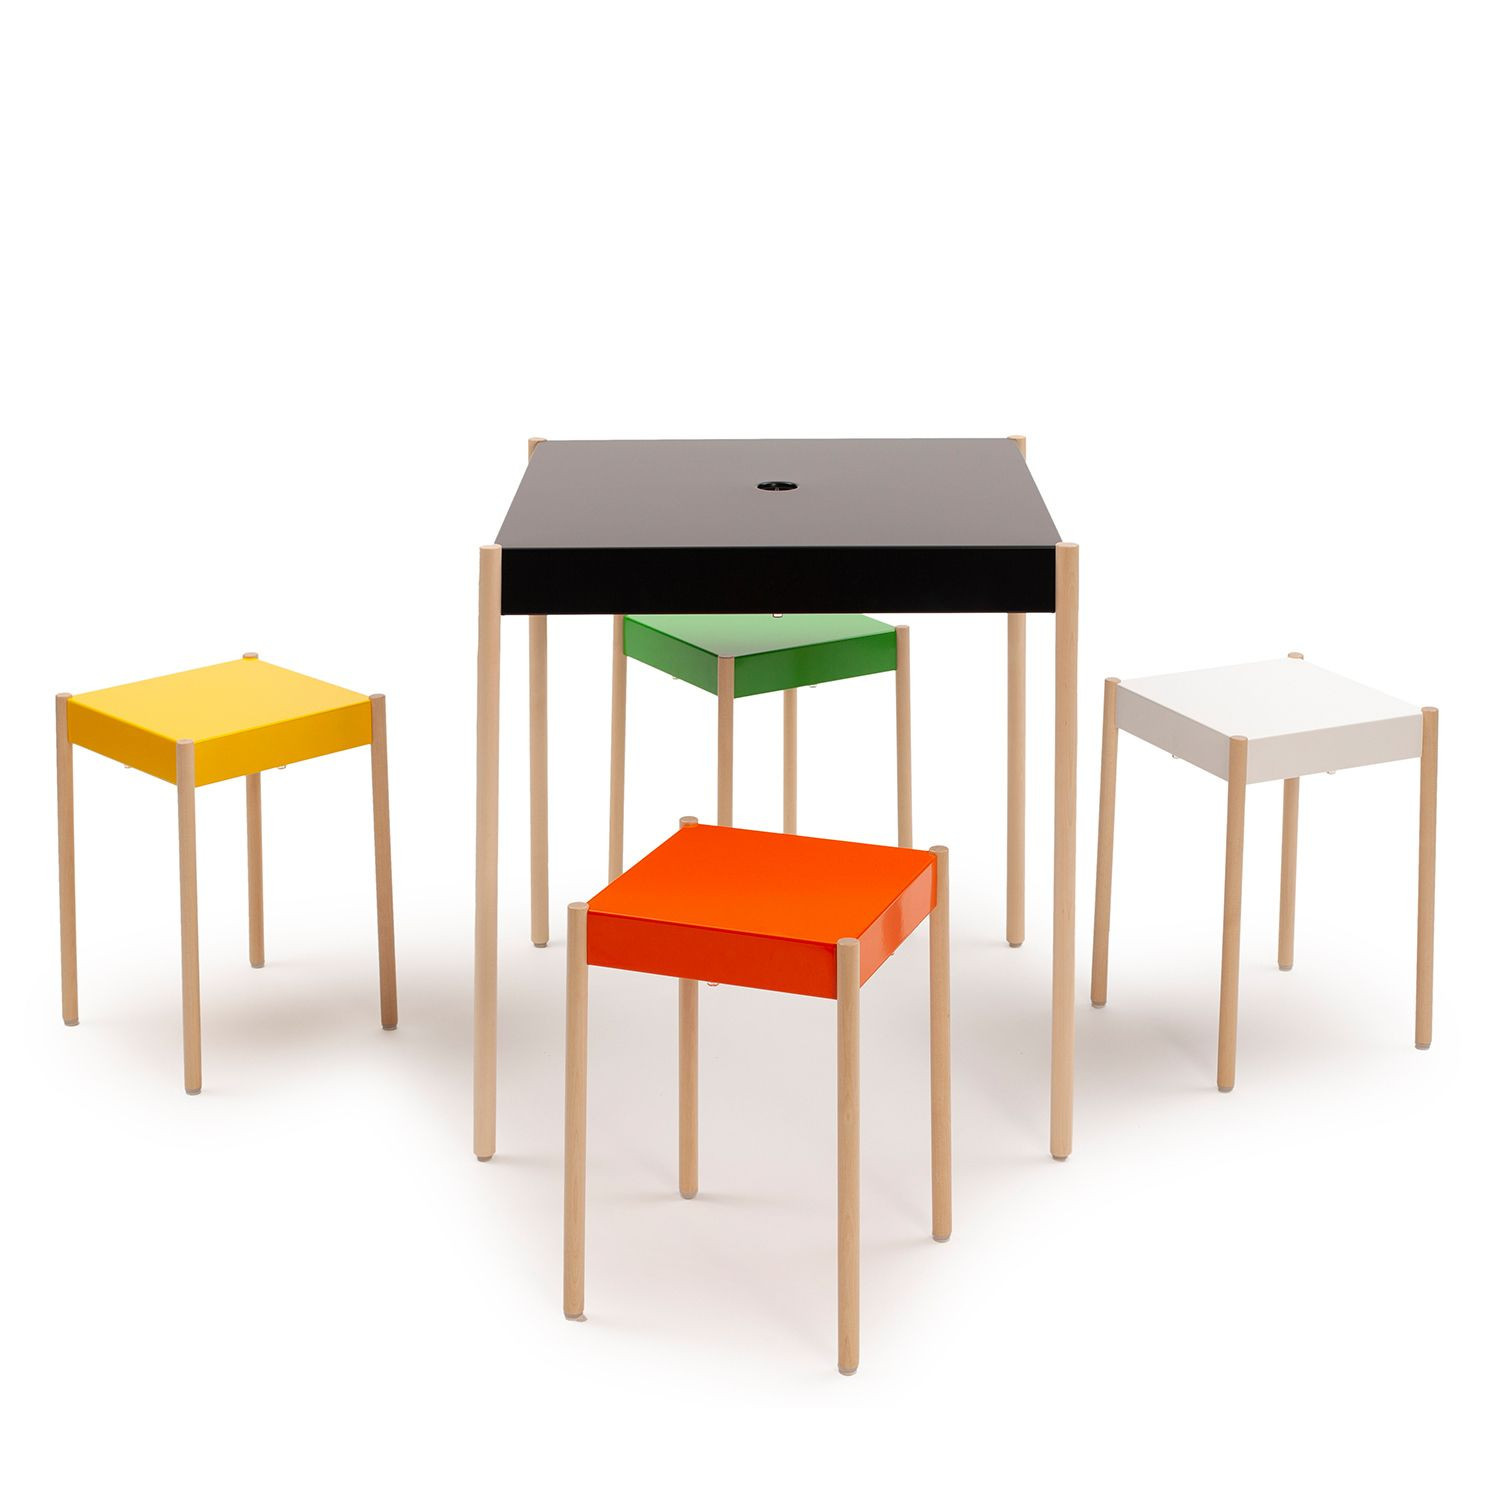 La Table Stackable Table TW/670x670   Black RAL 9005